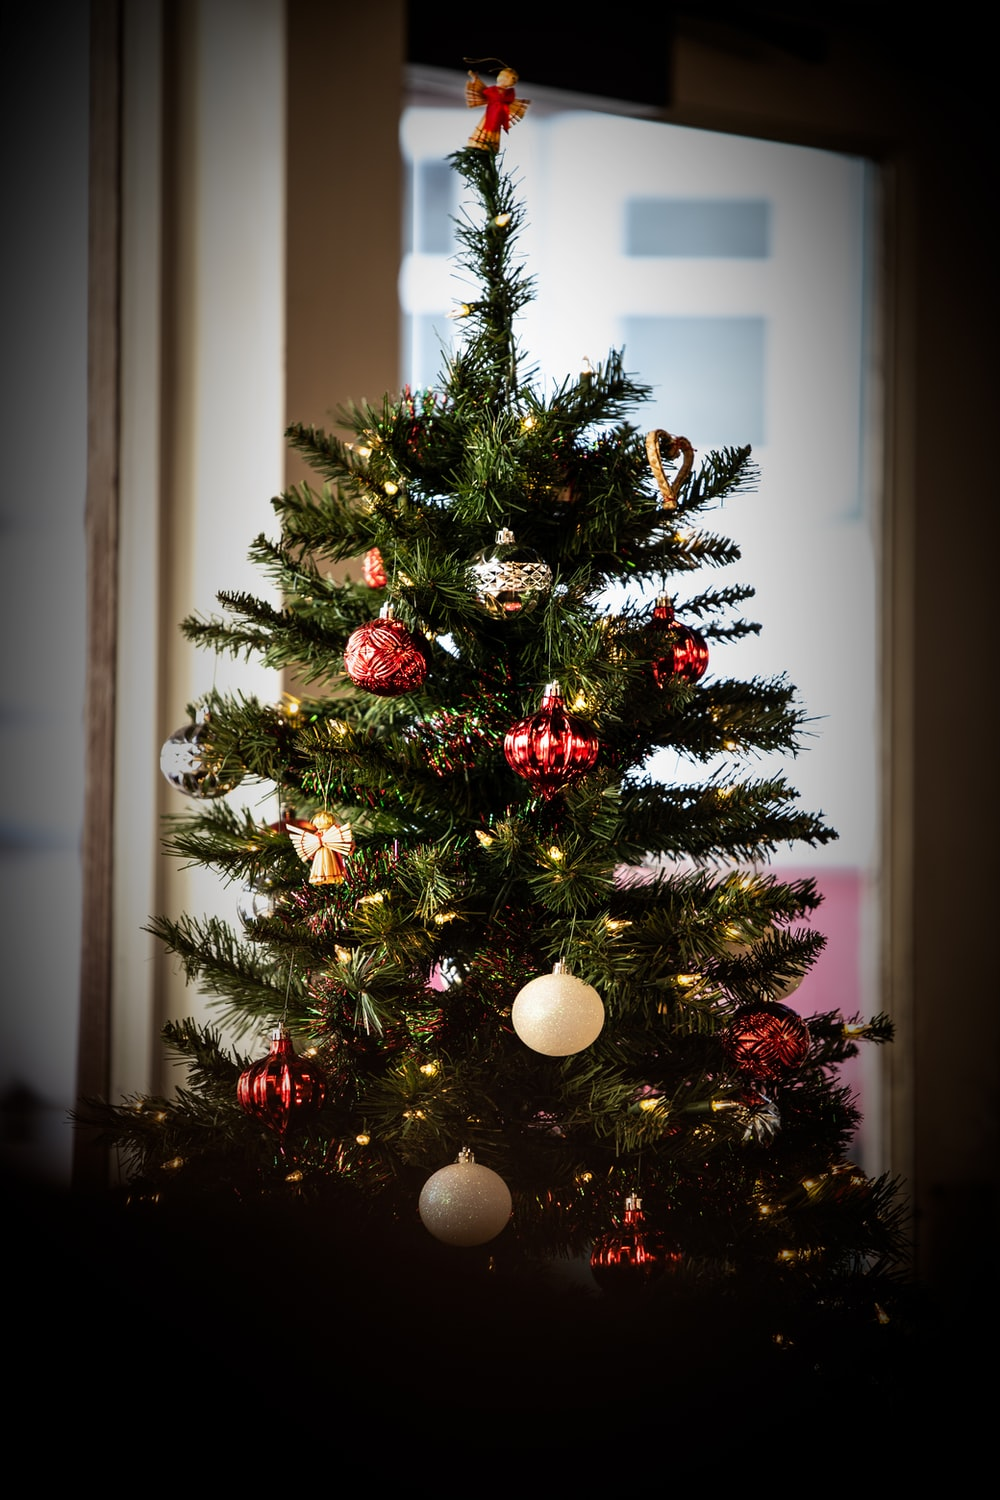 Christmas tree with ornaments indoors